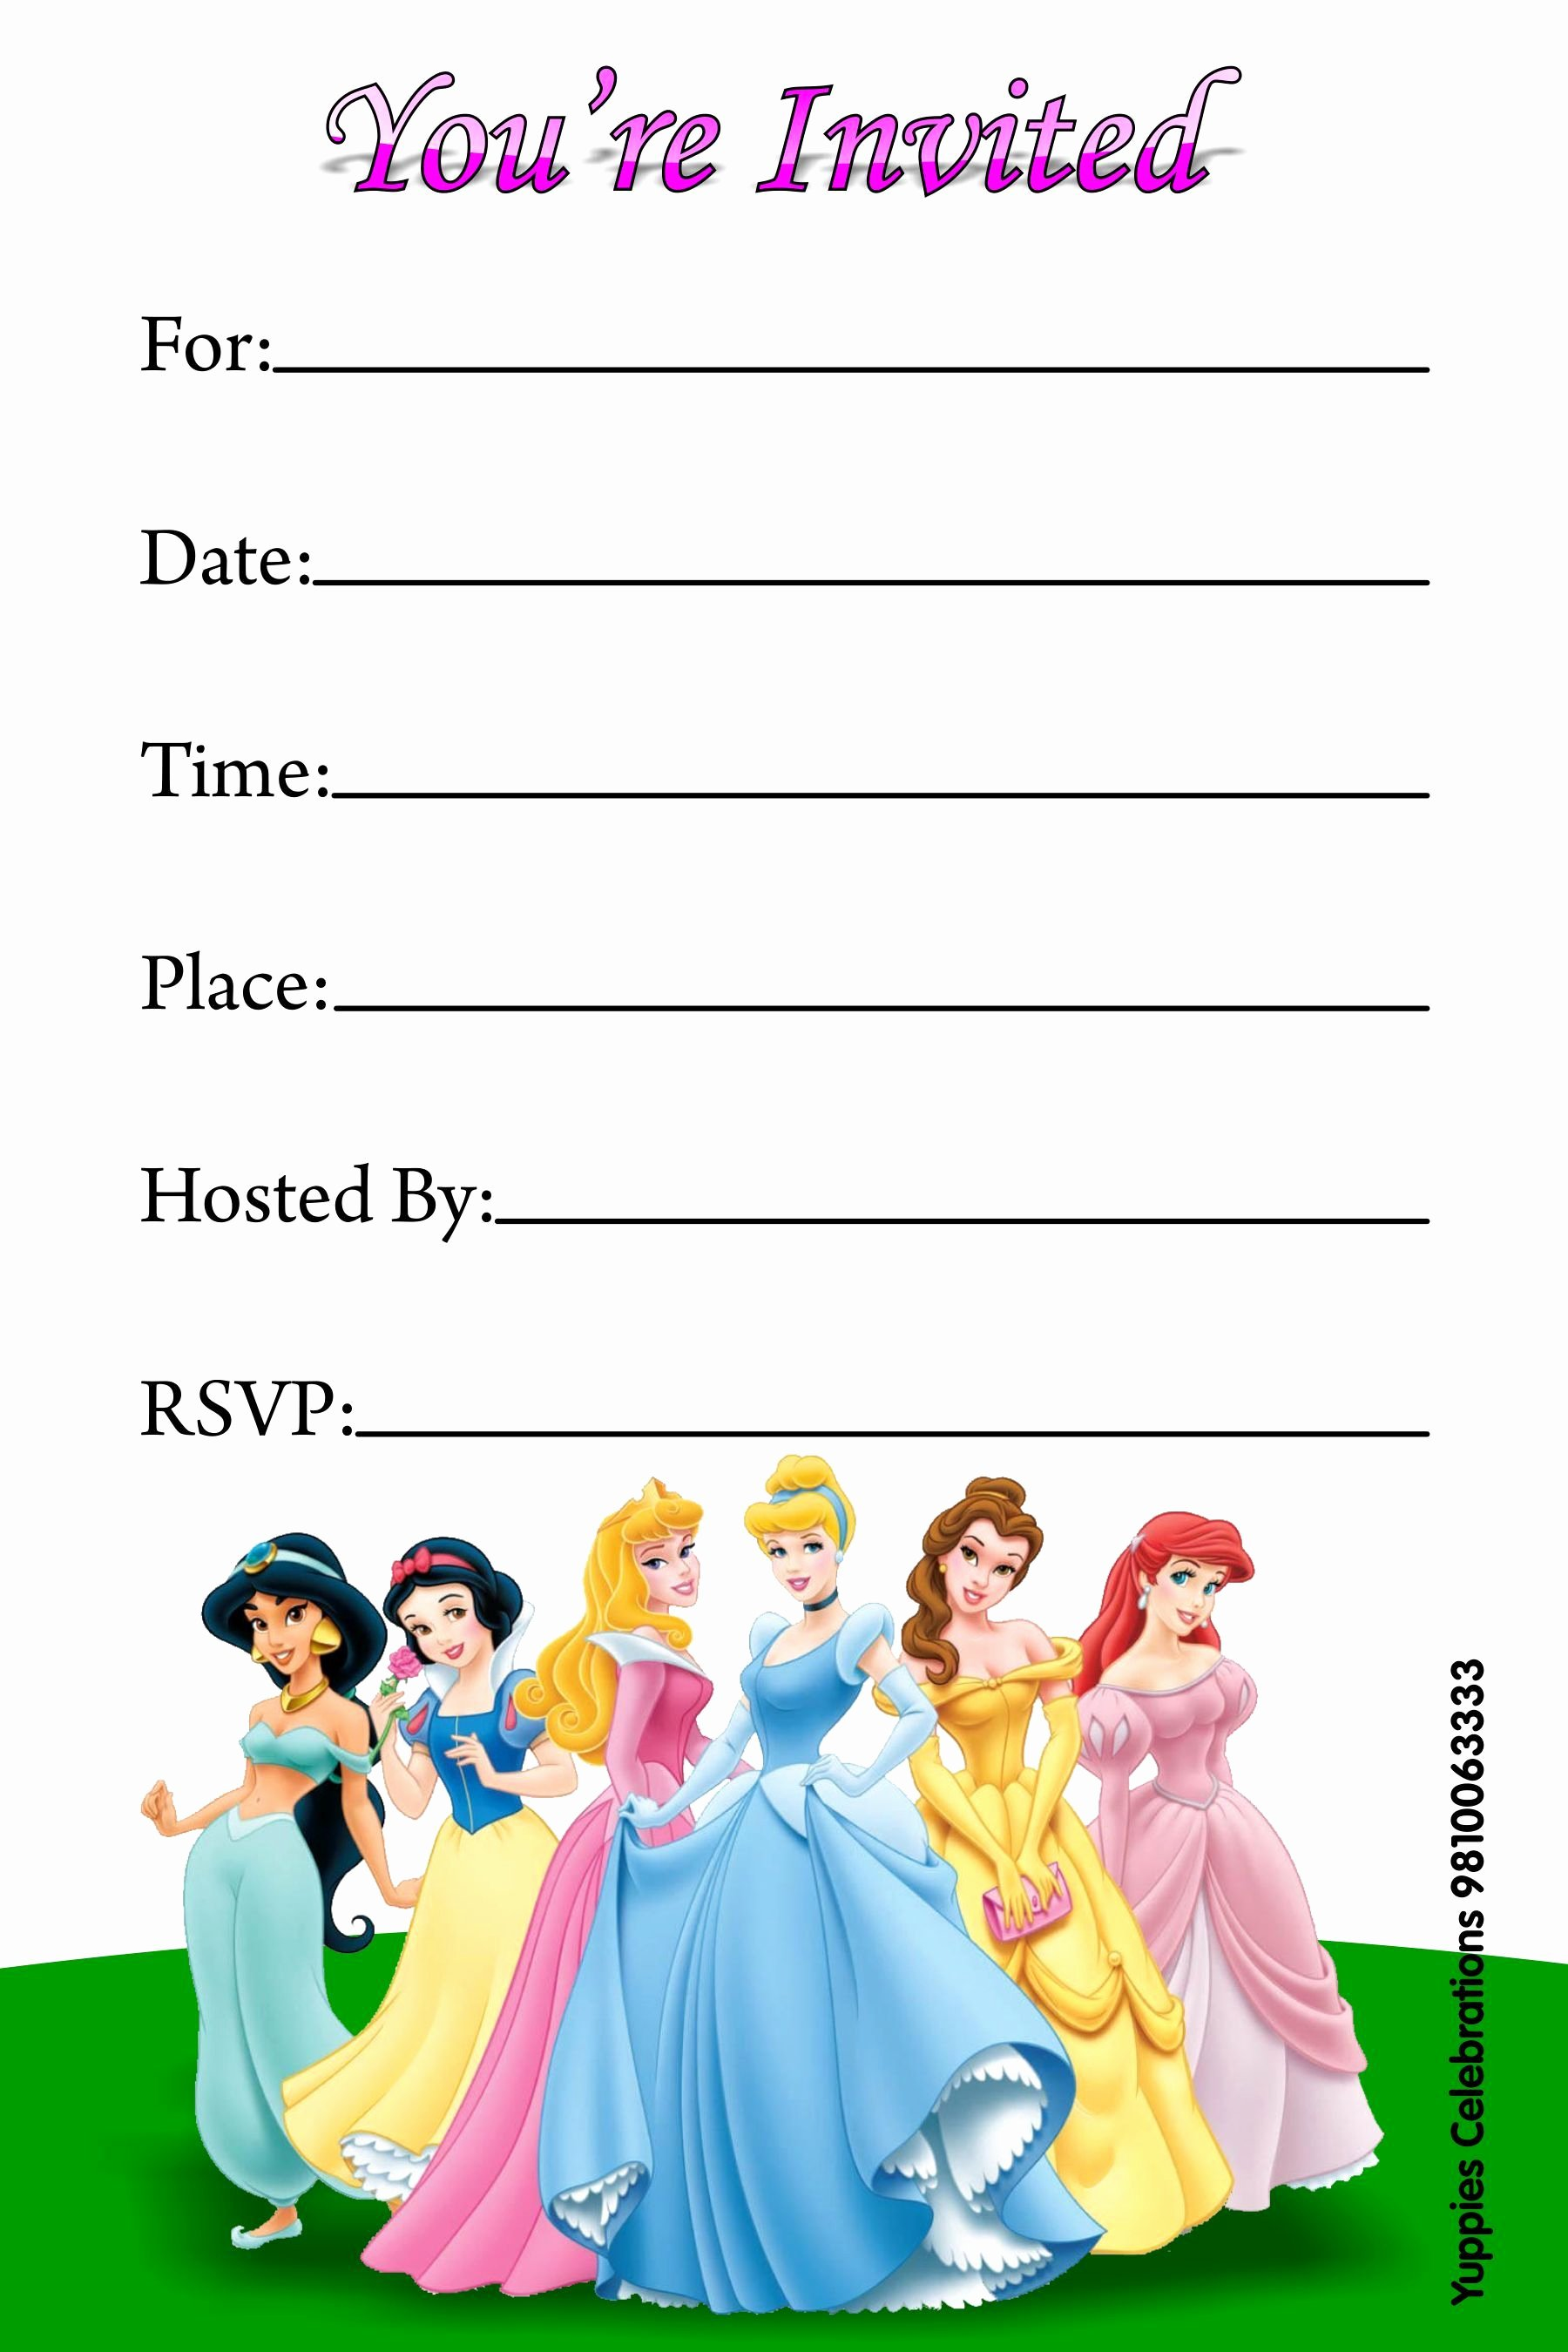 Disney Princess Invitation Template Best Of Disney Princess Invitations Free Printable Invitations